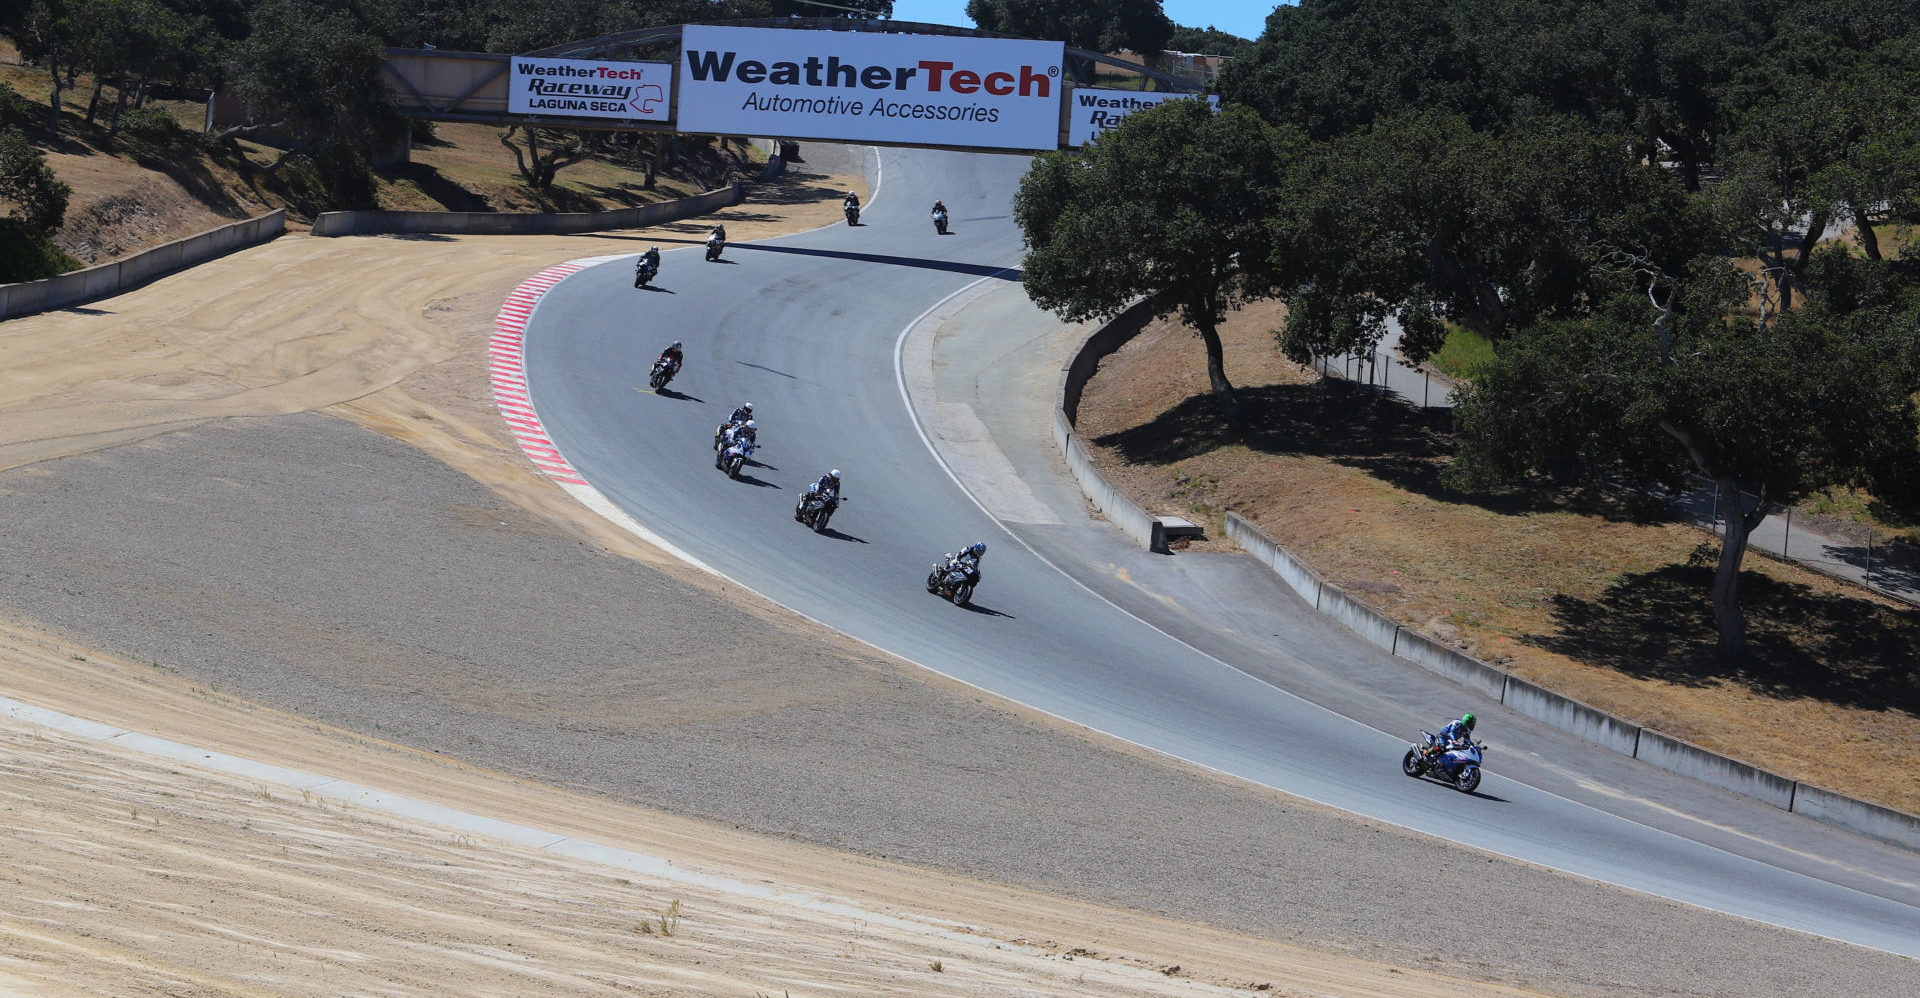 Motorcycles on track at WeatherTech Raceway Laguna Seca. Photo by Etechphoto.com, courtesy of AHRMA.